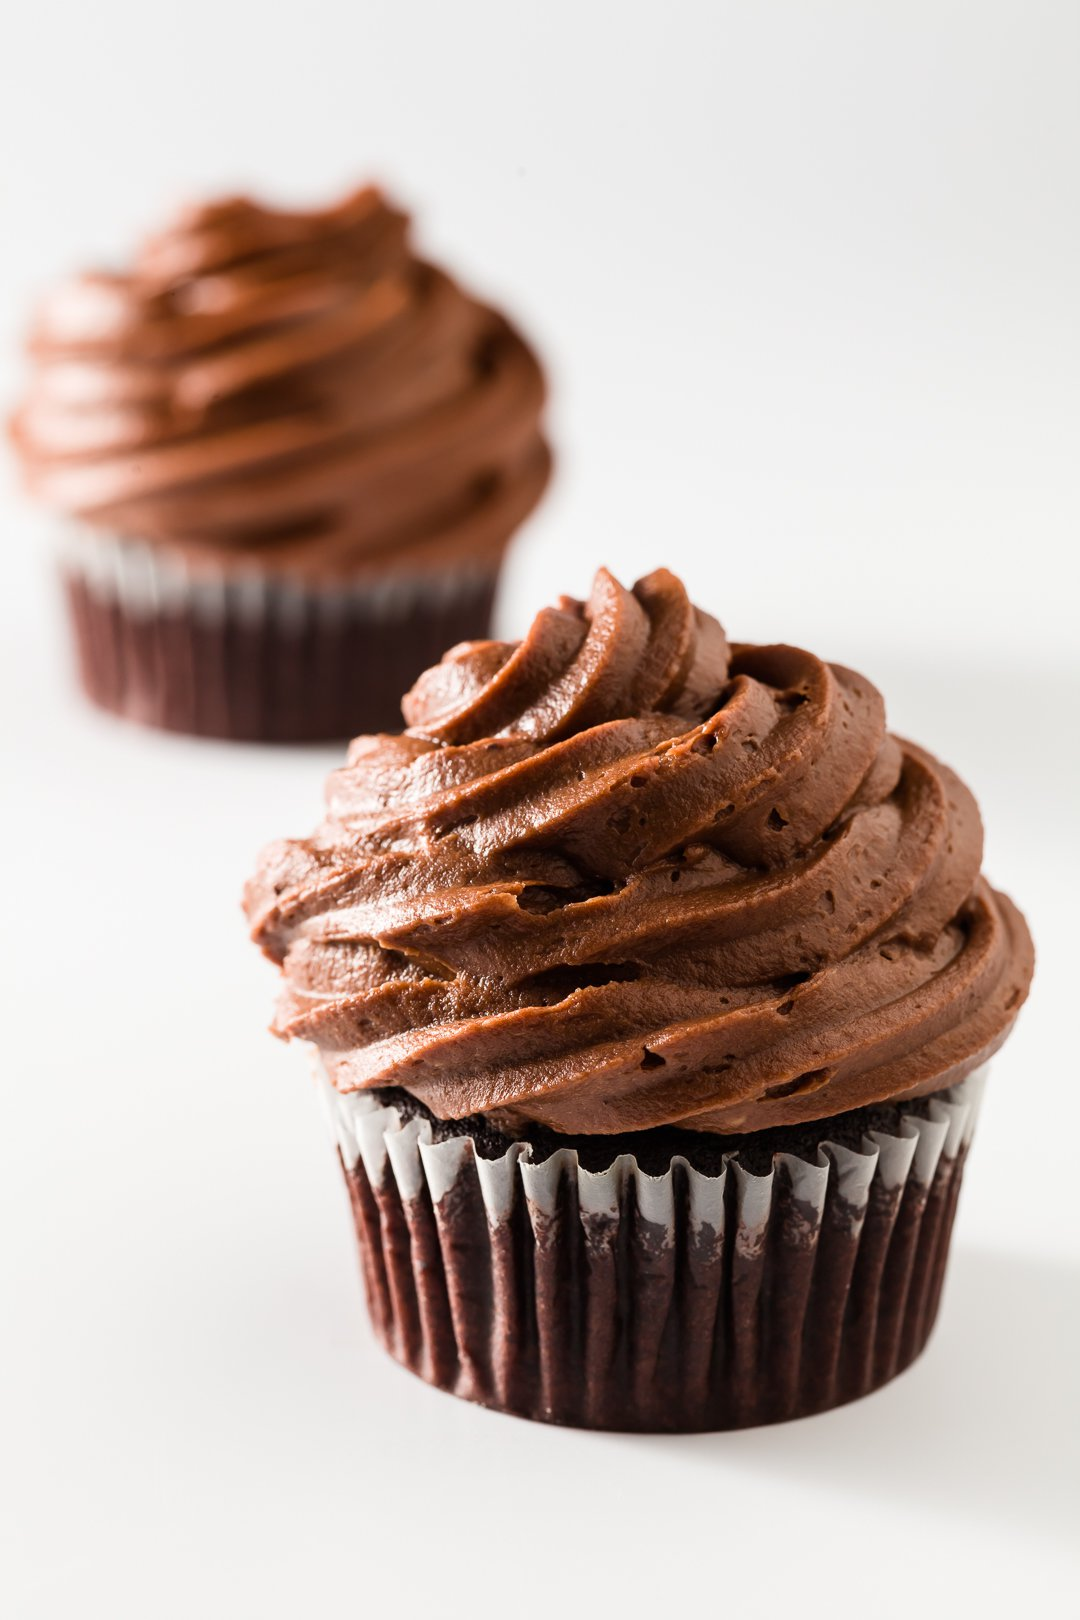 The Best Chocolate Cupcakes Decadent Moist And Easy To